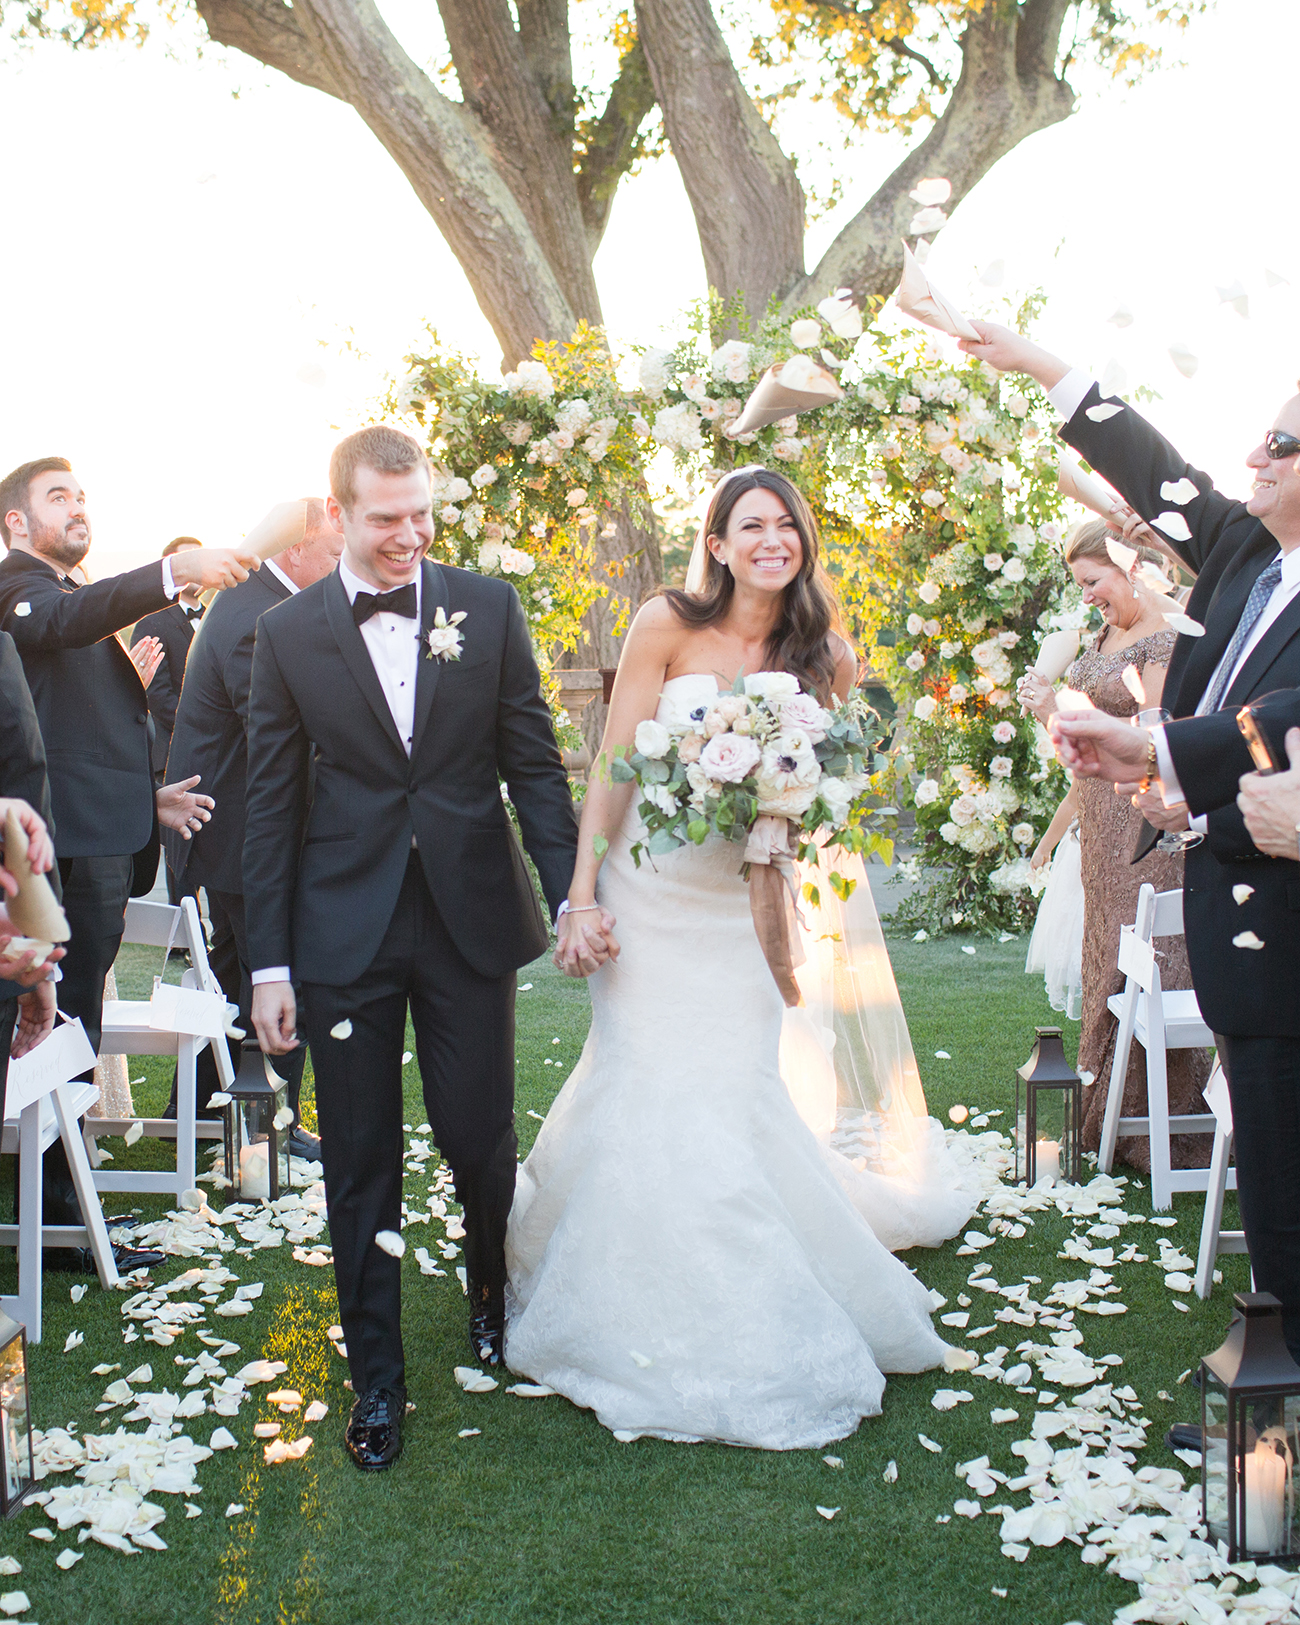 Your Guide to the Traditional Wedding Recessional